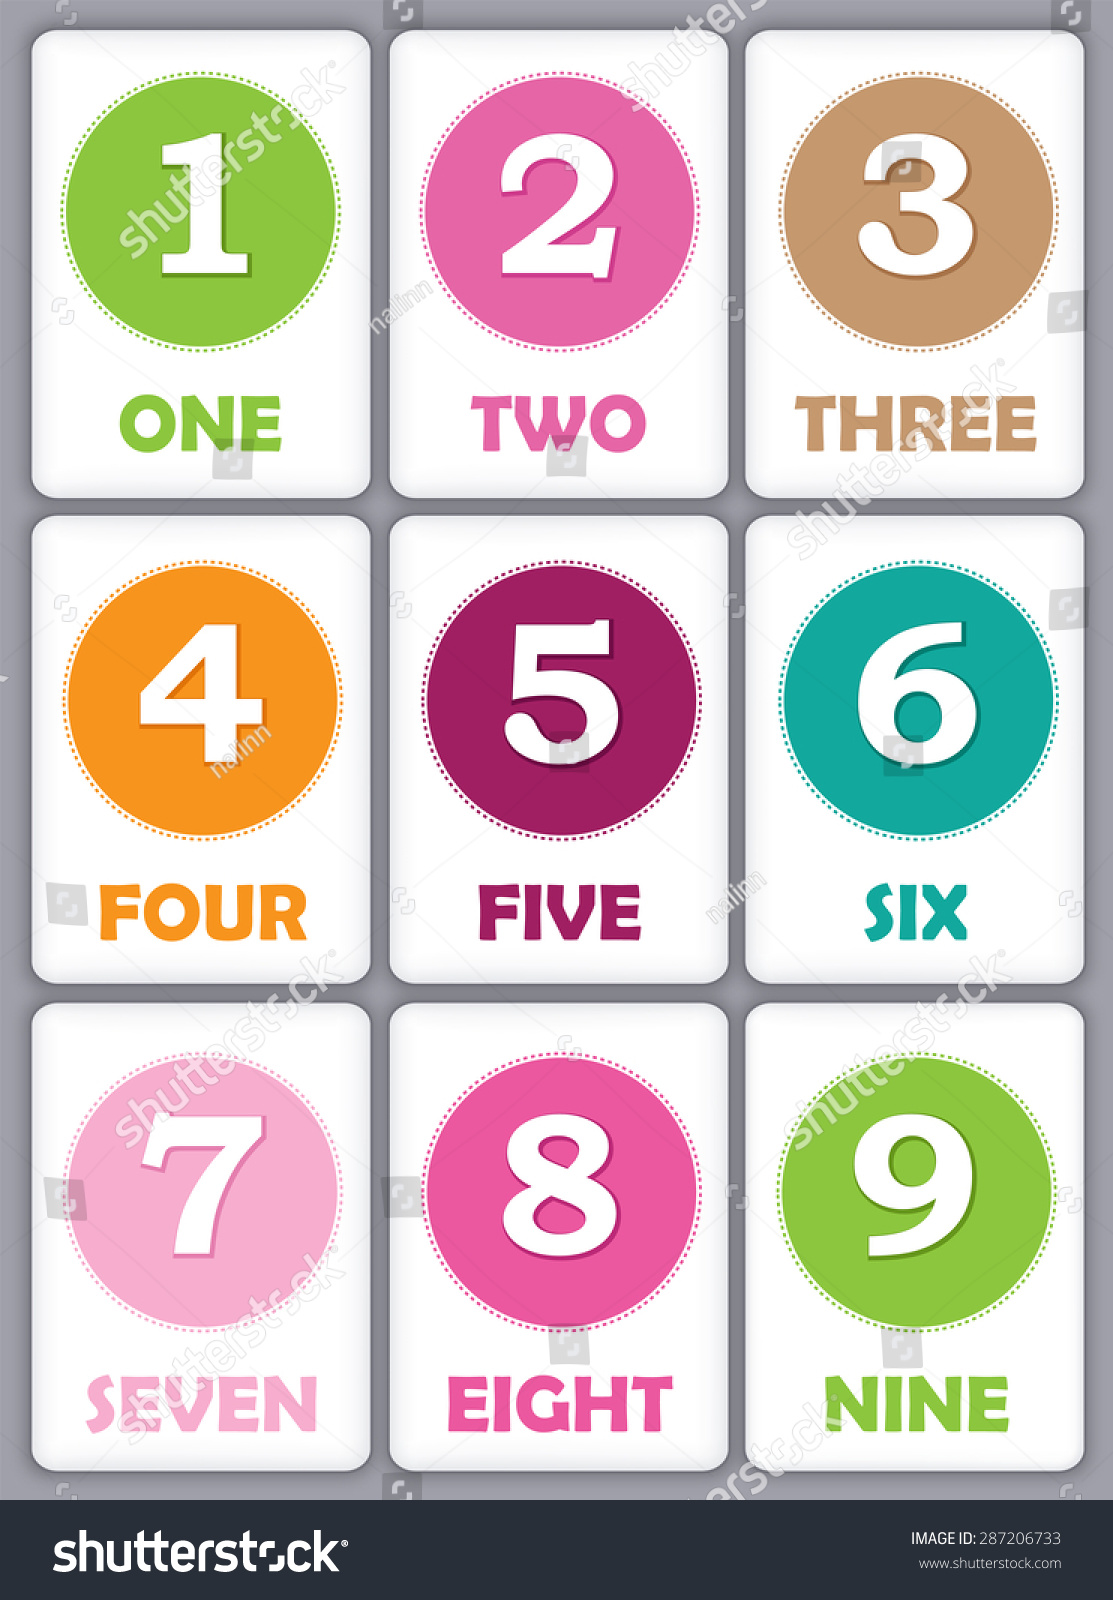 Printable Flash Card Collection For Numbers And Their